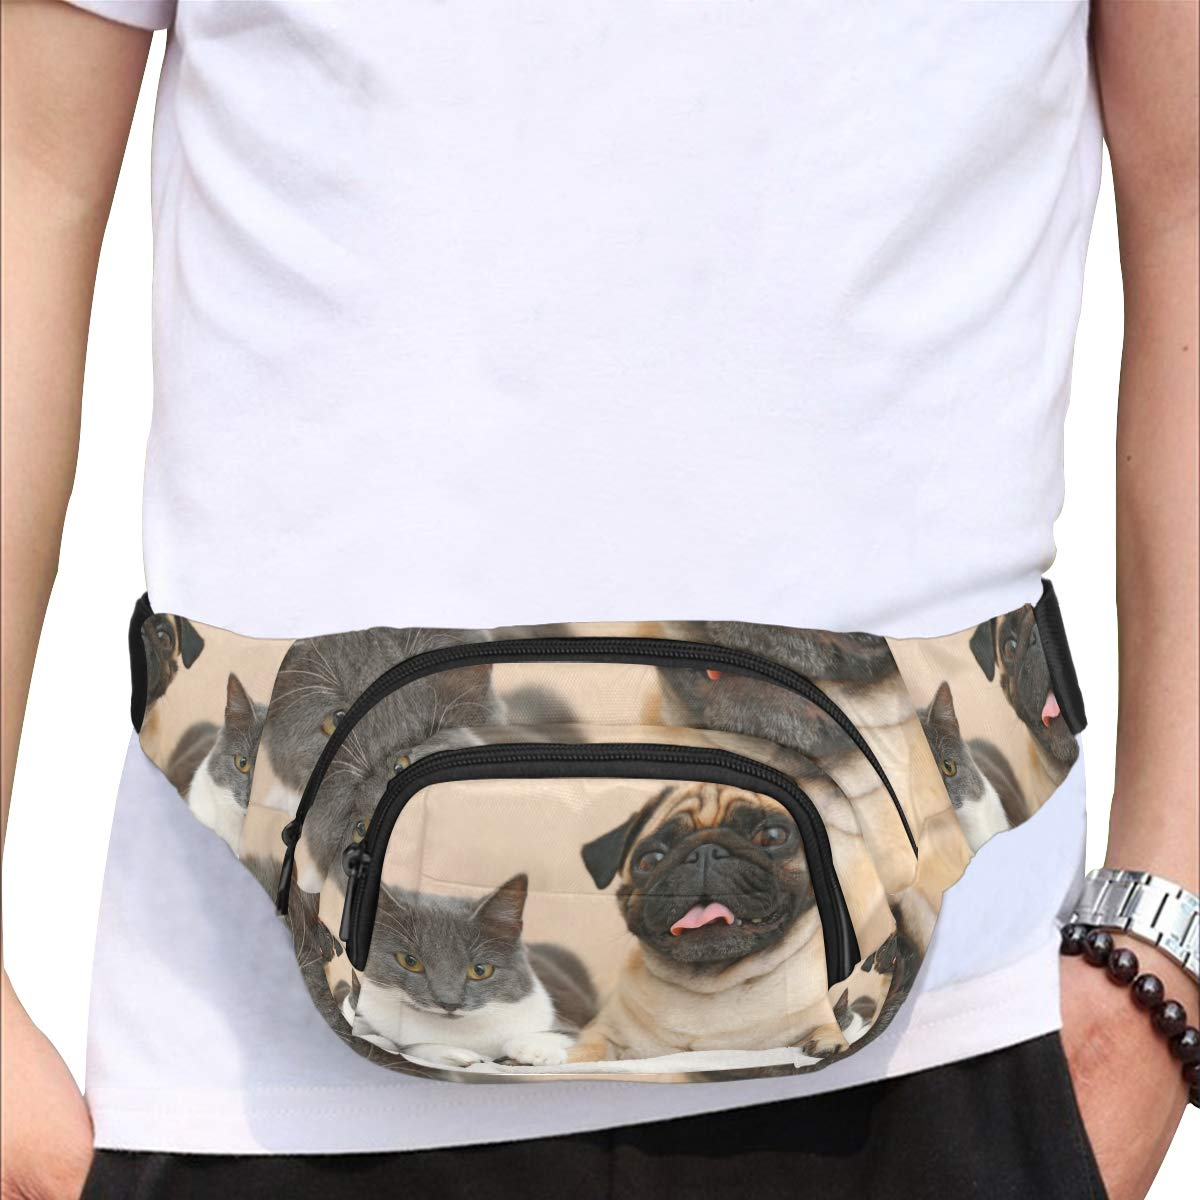 Pug And Cute Cat Sitting Together Fenny Packs Waist Bags Adjustable Belt Waterproof Nylon Travel Running Sport Vacation Party For Men Women Boys Girls Kids